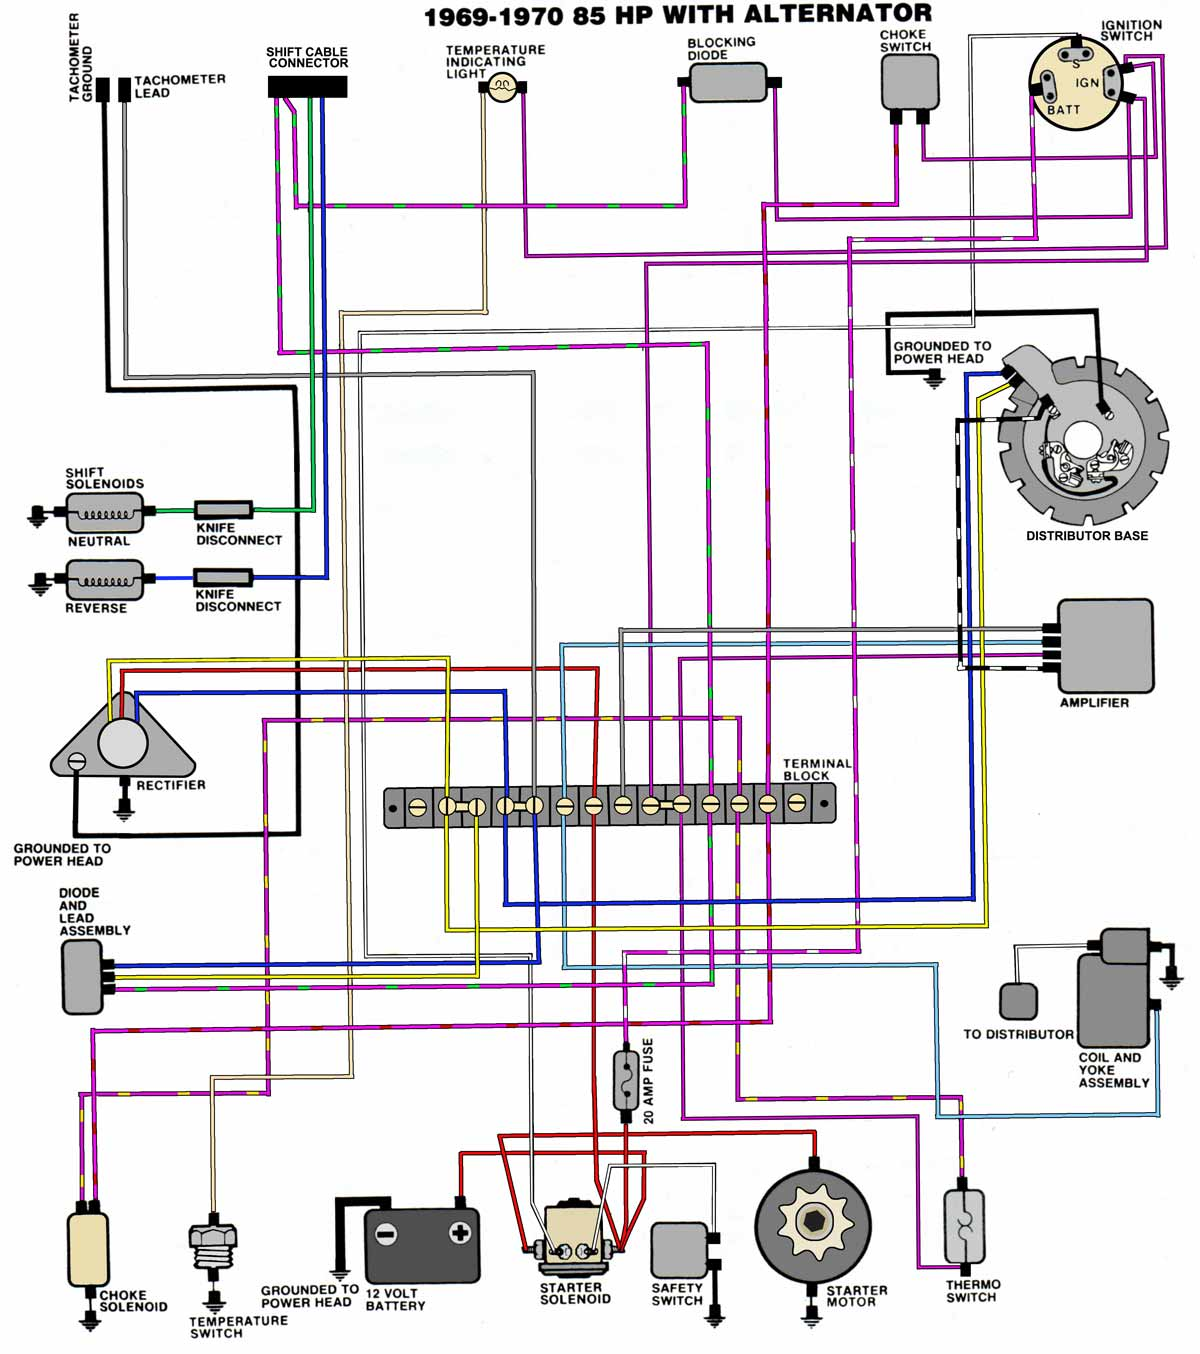 69_70_V4 1969 85hp ignition wiring help page 1 iboats boating forums omc wiring harness diagram at virtualis.co